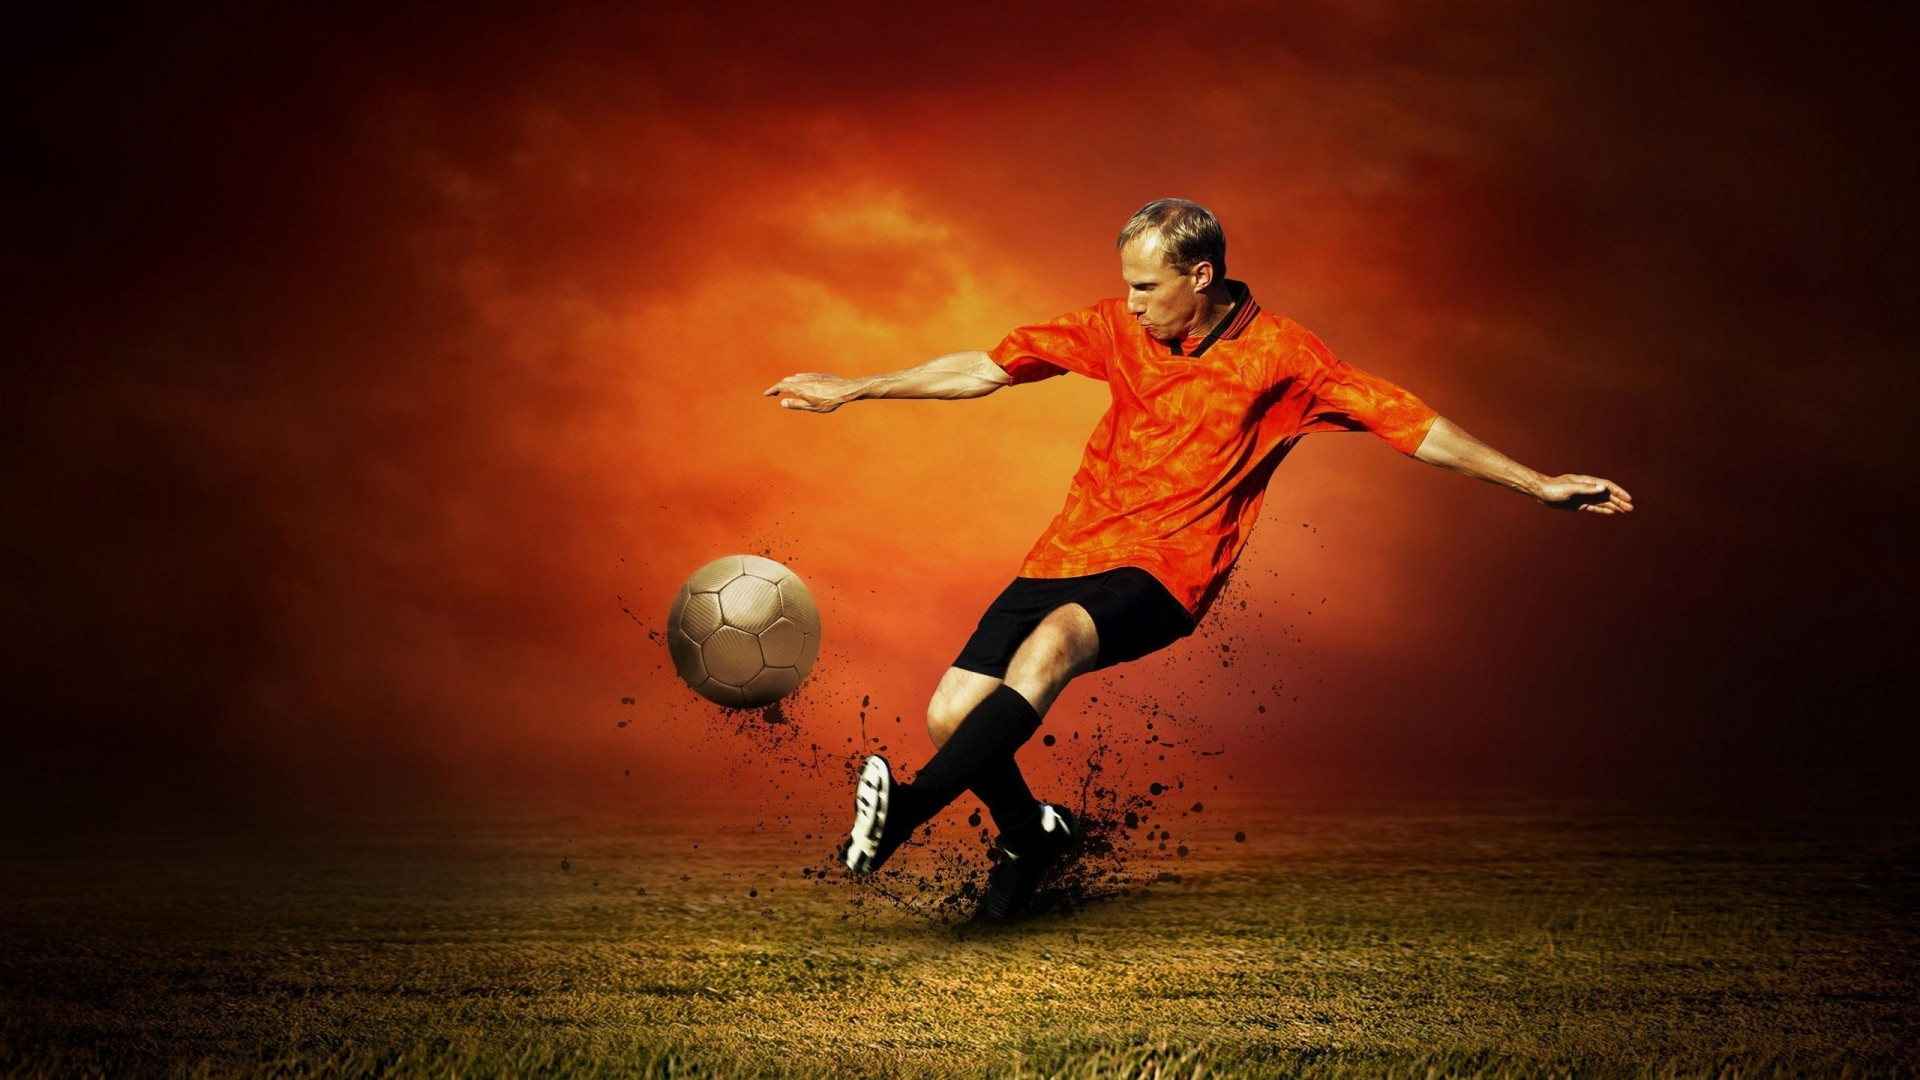 Wallpaper Android Mobile Sport: 57+ Sports Wallpapers ·① Download Free Beautiful High